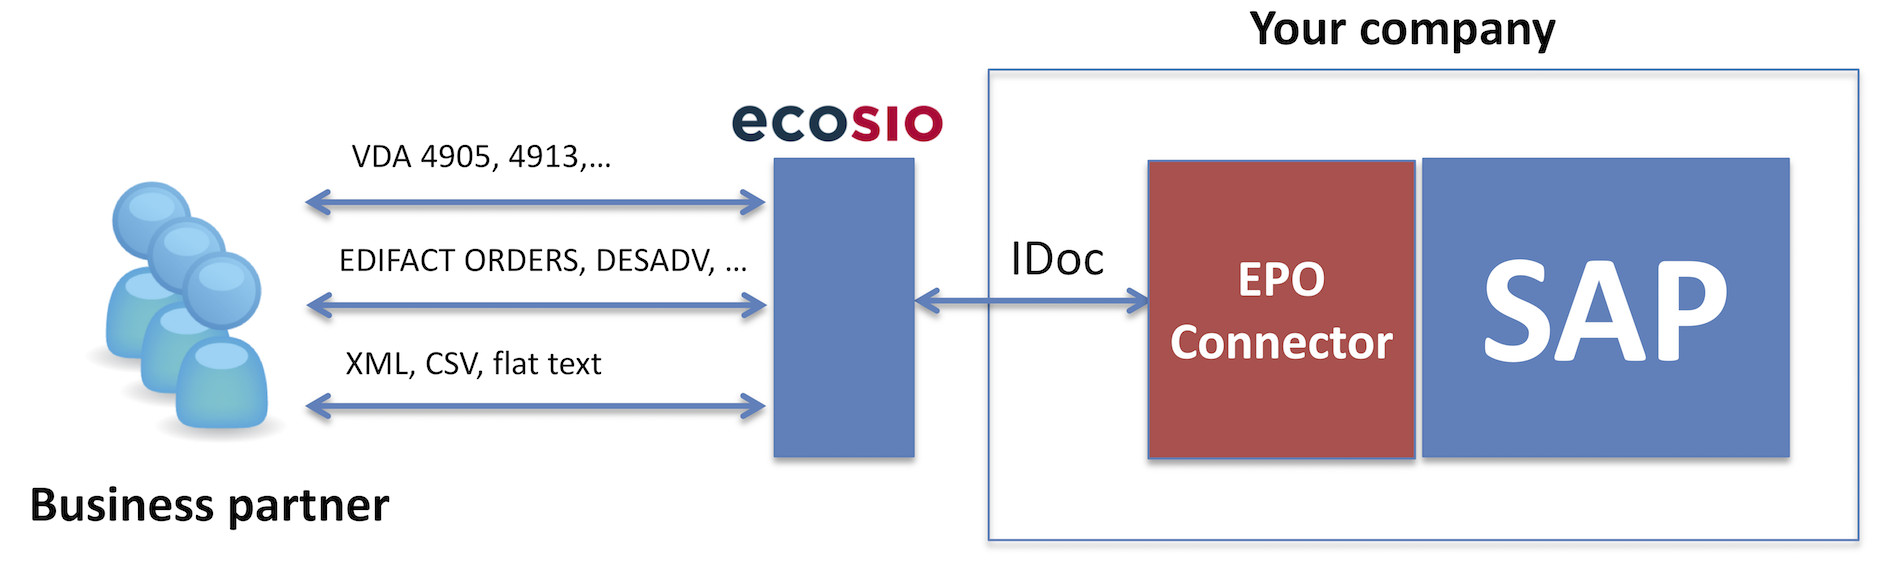 What is the SAP IDoc format? | ecosio